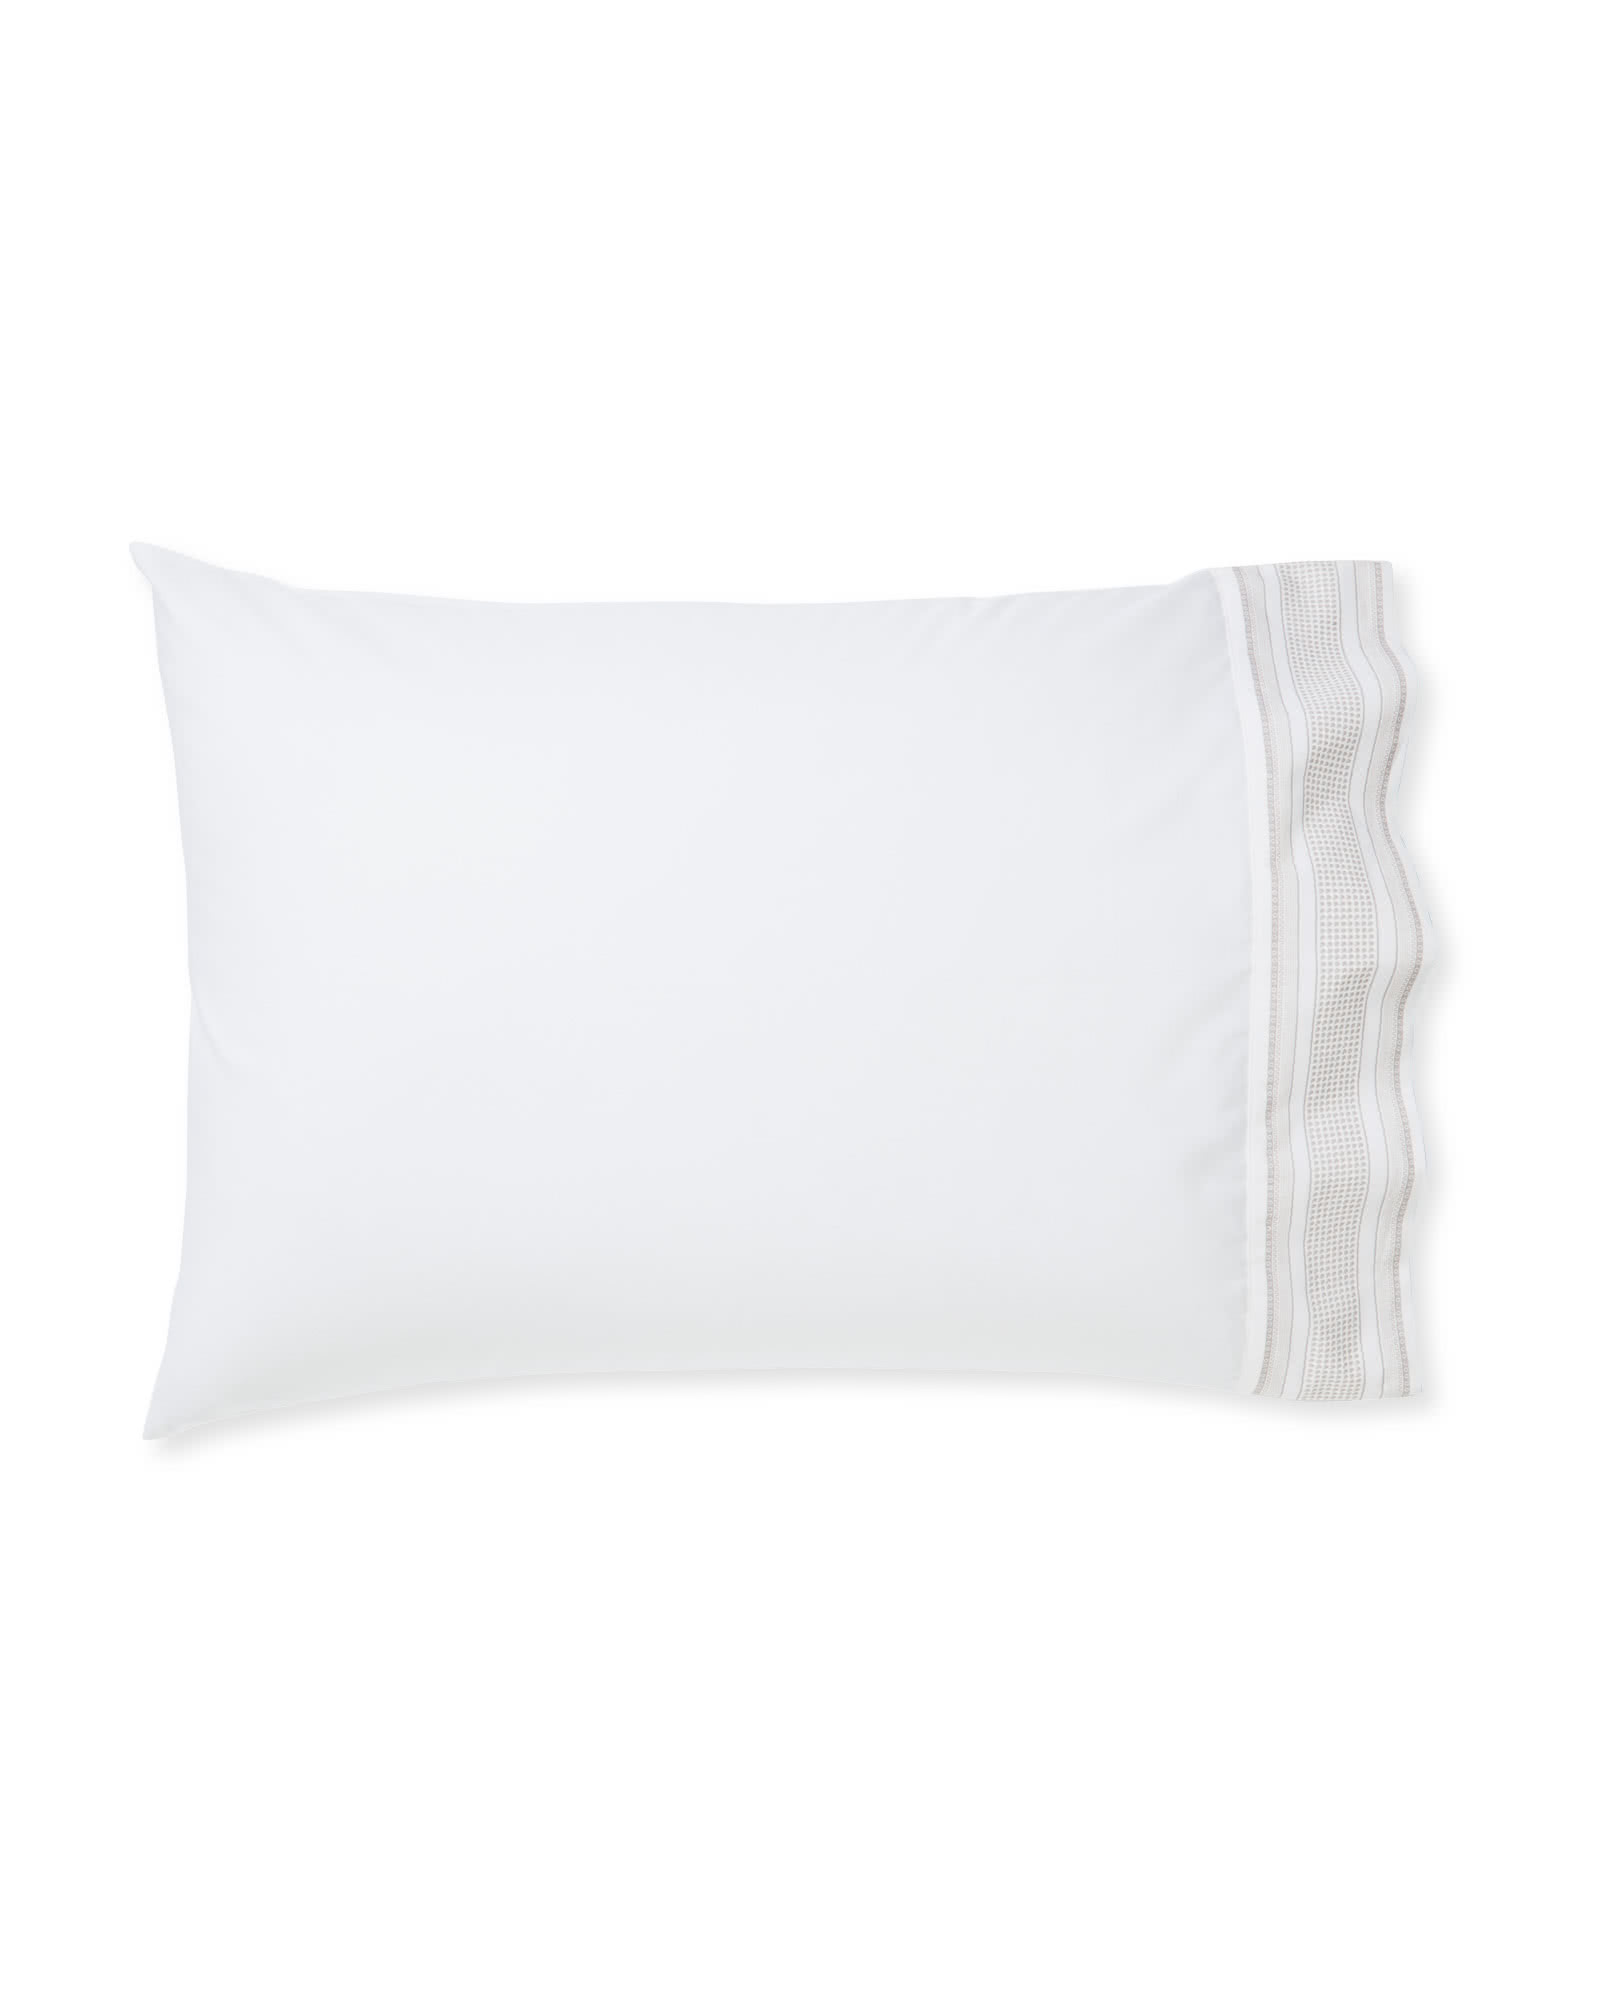 Extra Beaumont Pillowcases (Set of 2) - Bark